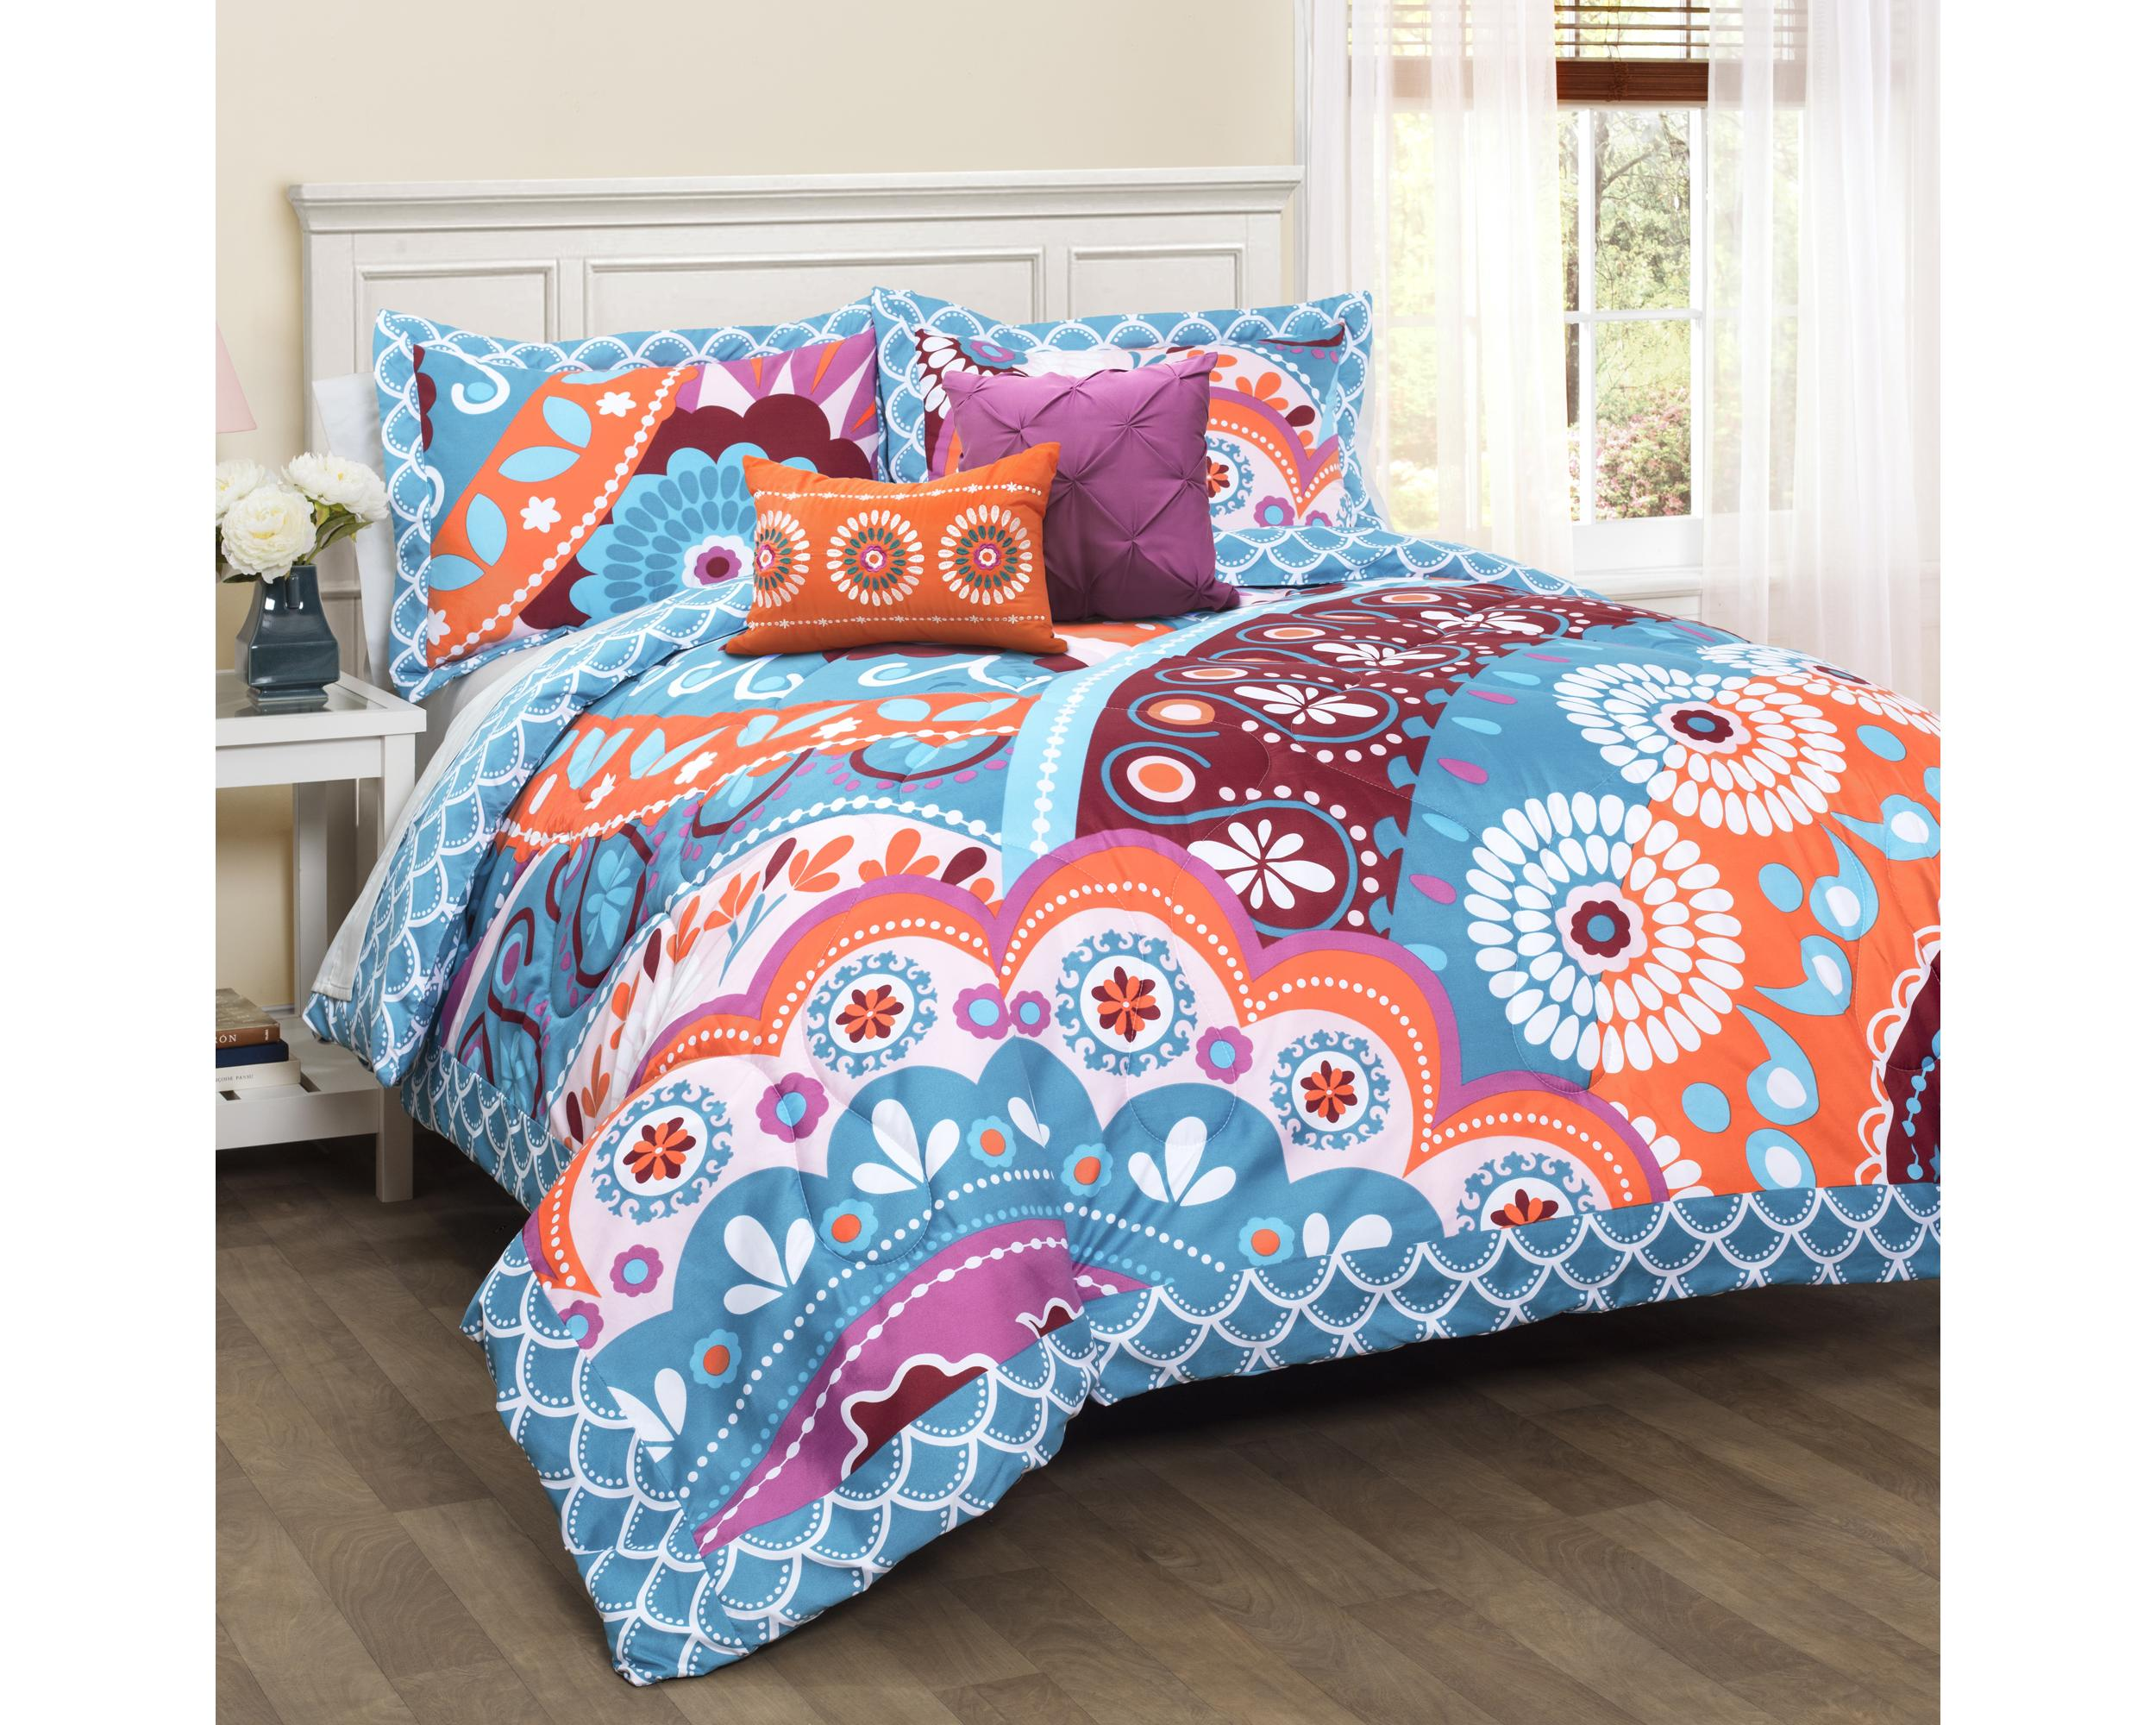 comforter plaid burgundy sets duvet bedspreads king set orange extra designs large oversized bedding